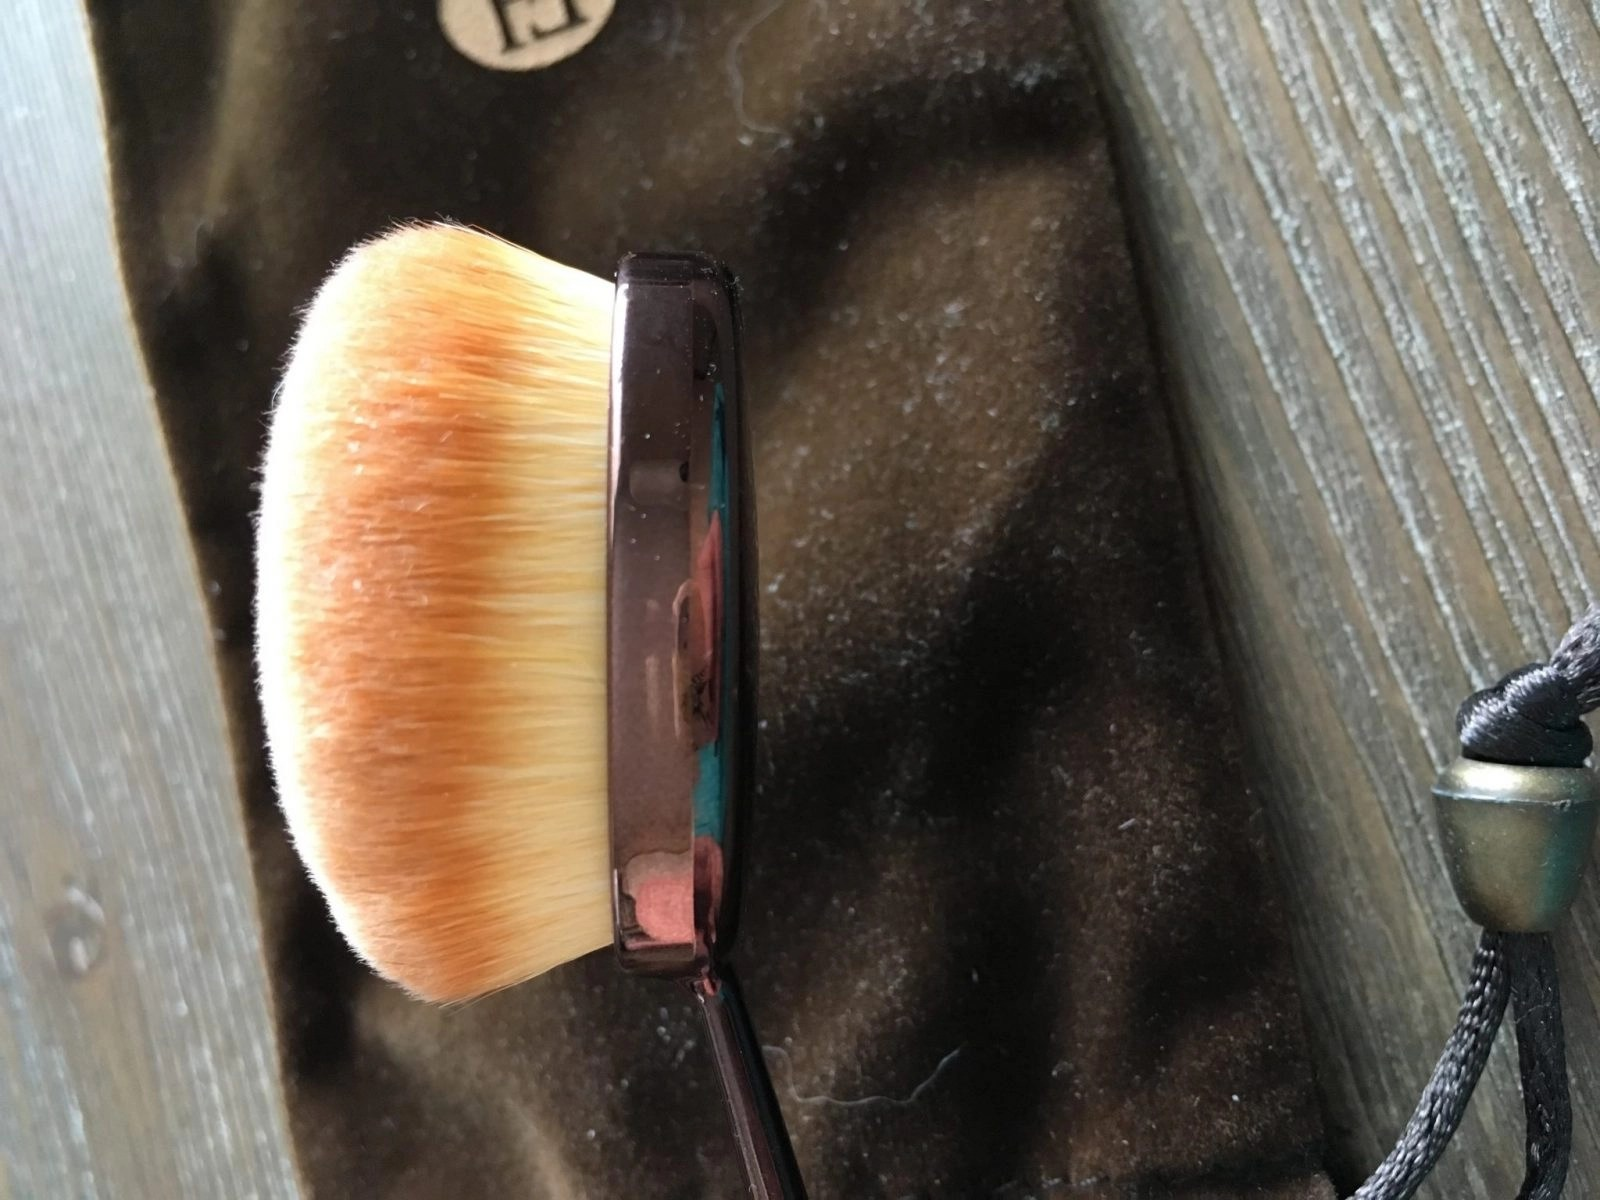 Hue Foundation Brush from the side